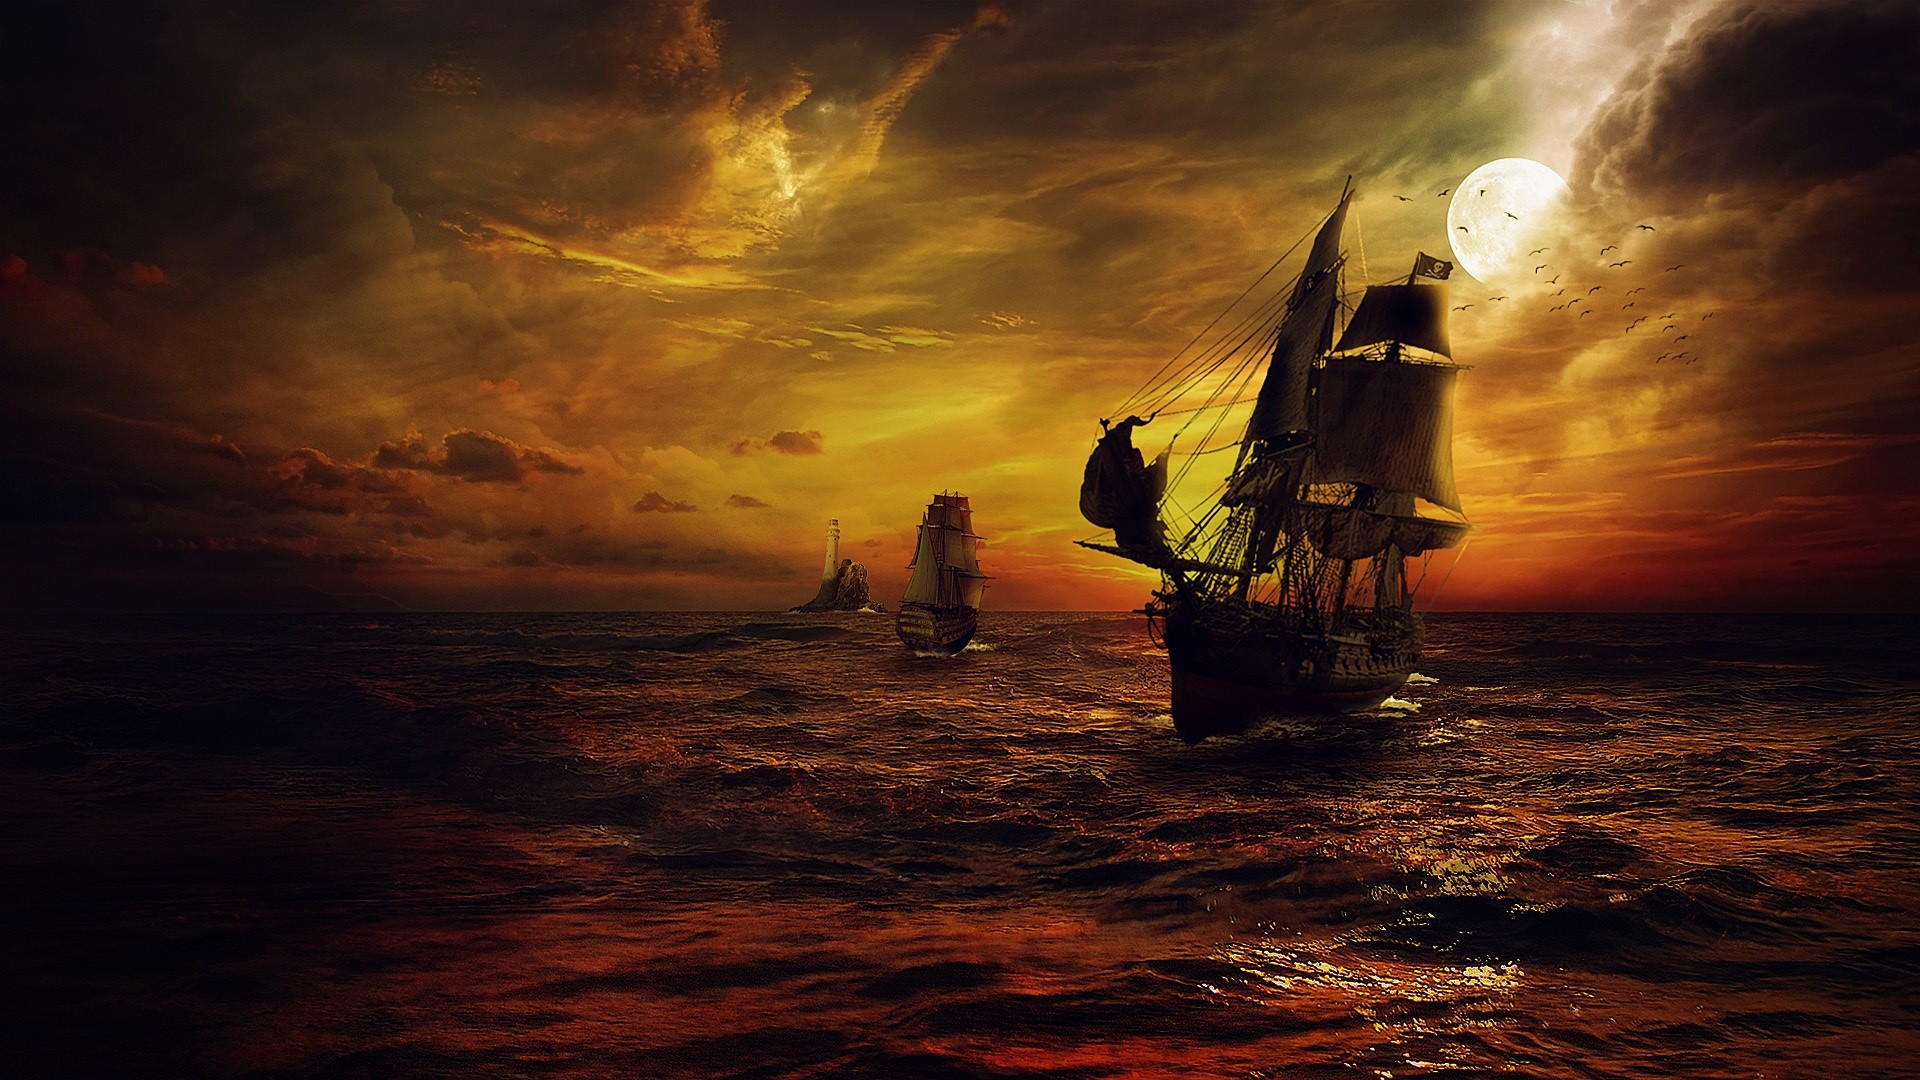 1920x1080 Pirate Ship Night Sailing.